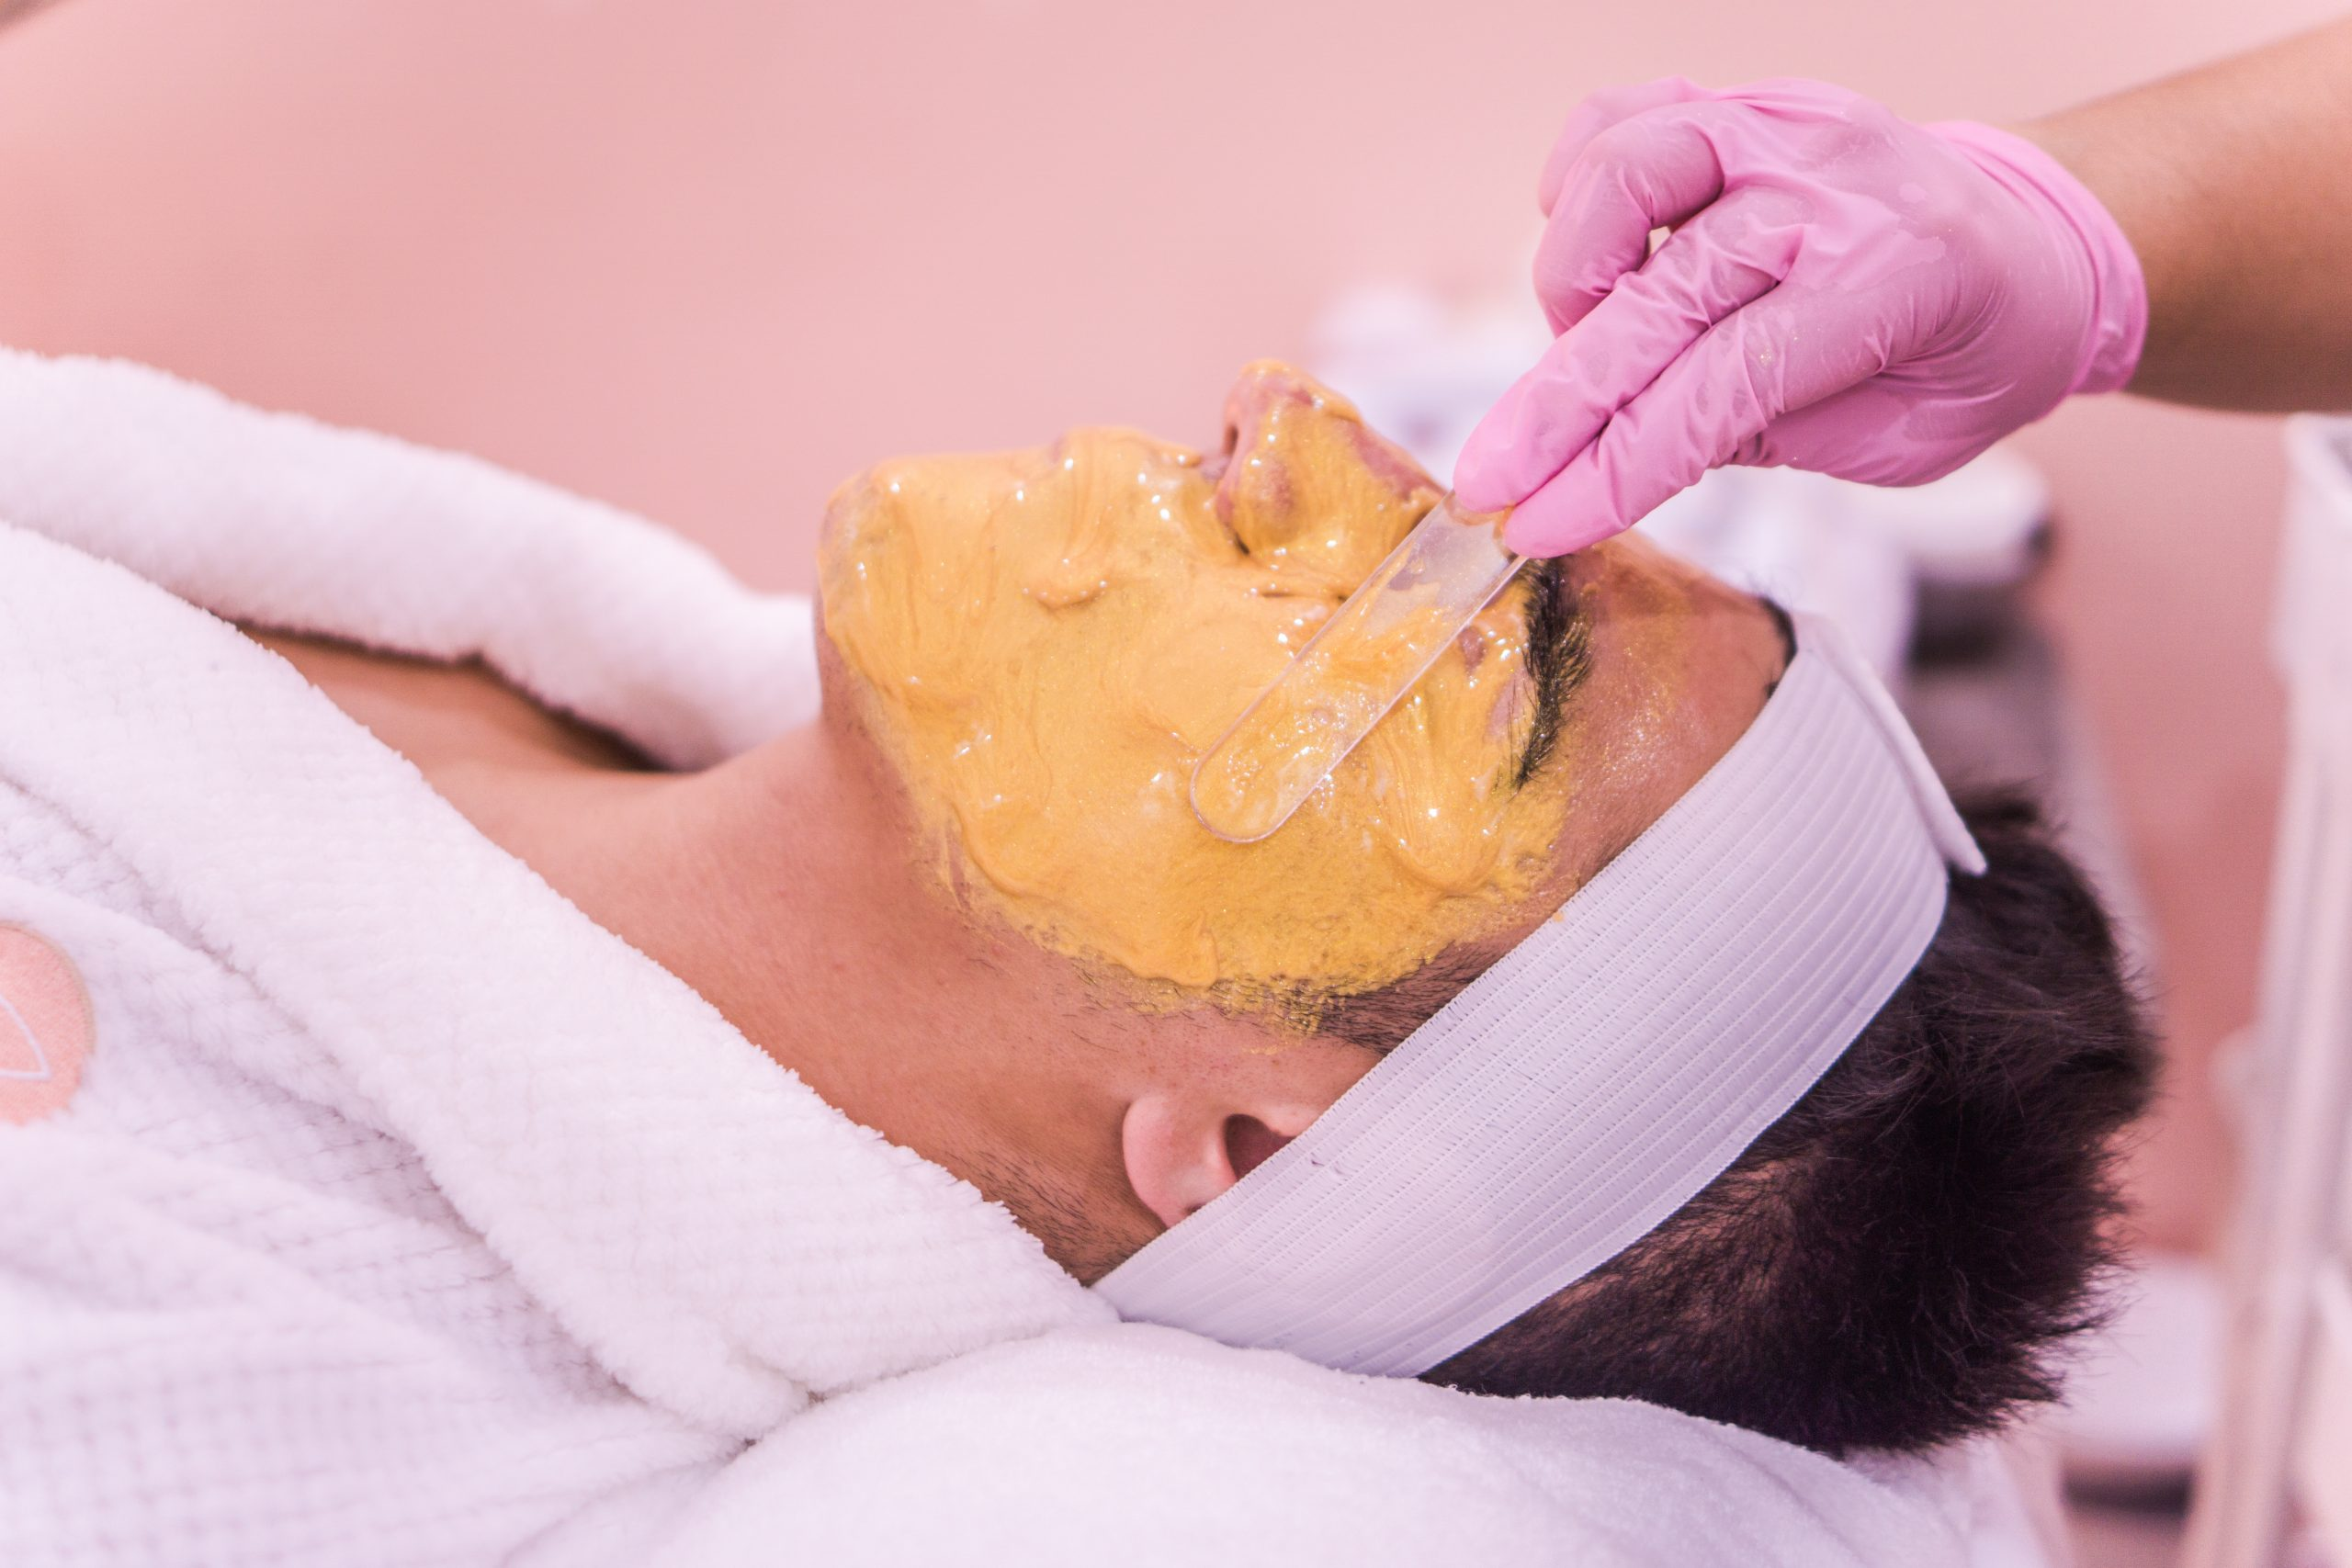 7 Wax Treatments You Should Leave to the Pro article image Bliss Skincare